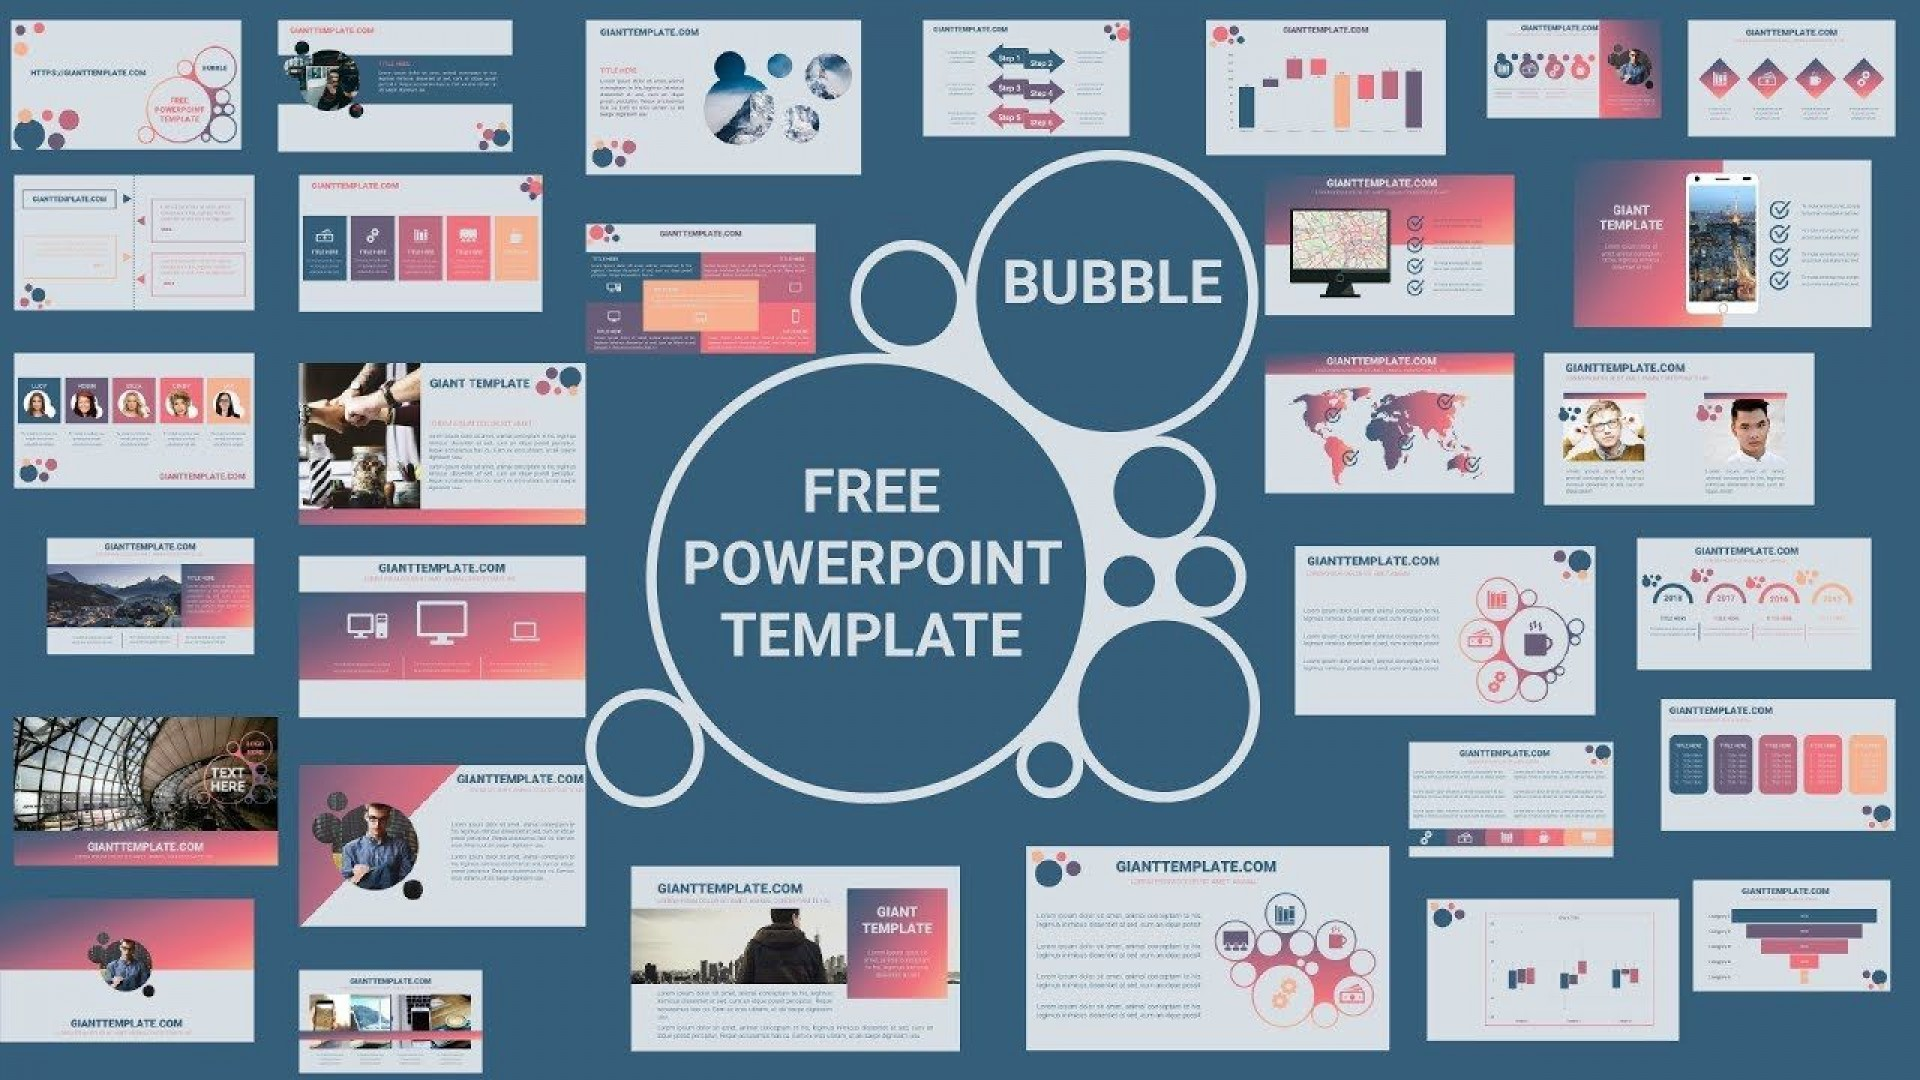 006 Wondrou Animated Ppt Template Free Download 2010 High Definition  3d Powerpoint1920